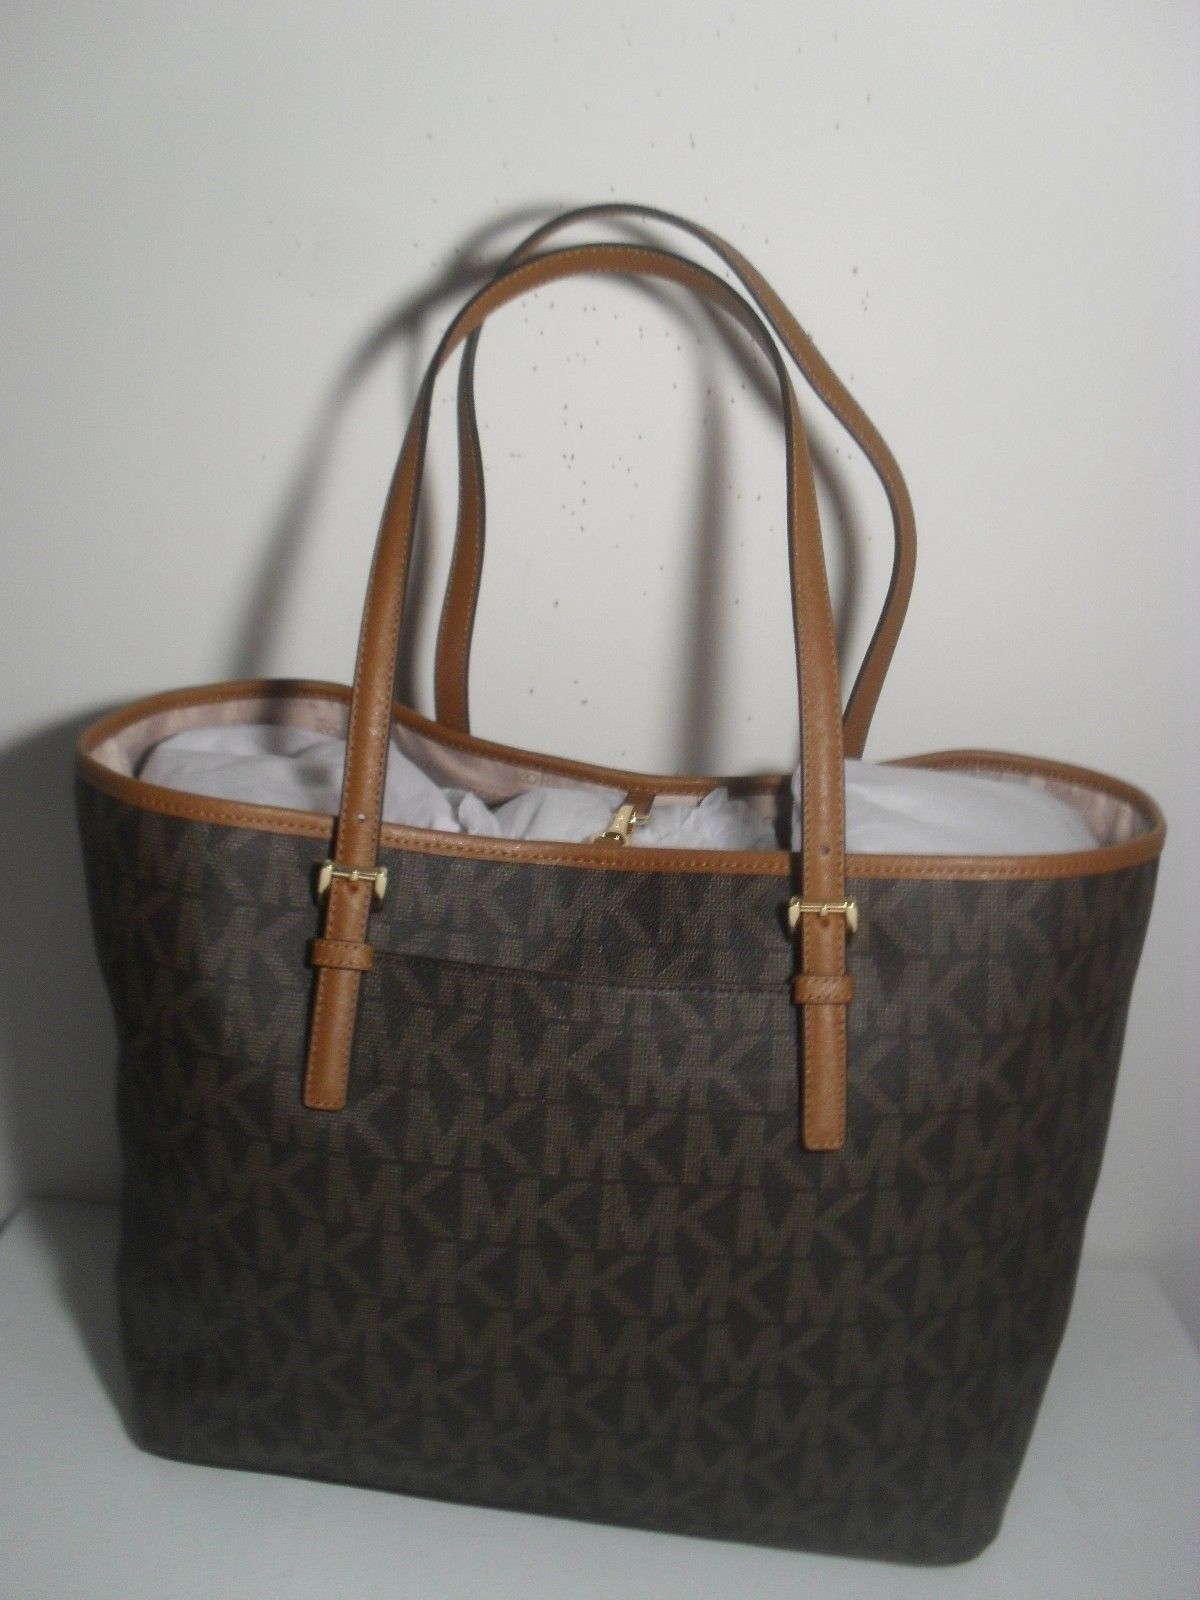 a1d5e76134cdf NWT Michael Kors Jet Set Brown MK Signature Carryall PVC Large Tote Shopper  Bag  127.55